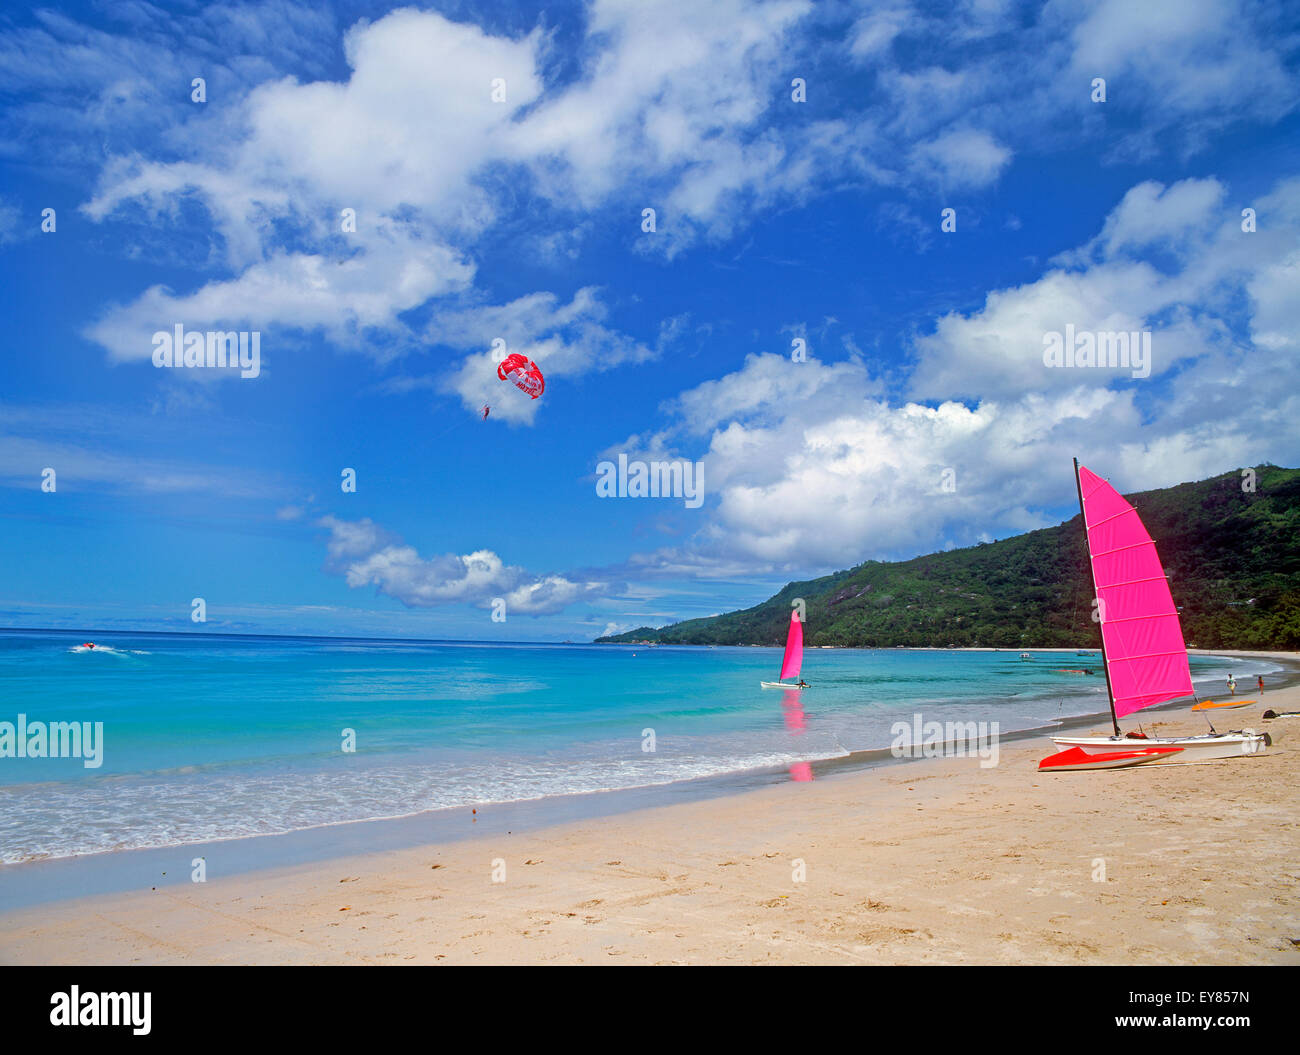 Catamaran on sandy shore beach and on the water under parasailor on Mahe Island in the Seychelles - Stock Image